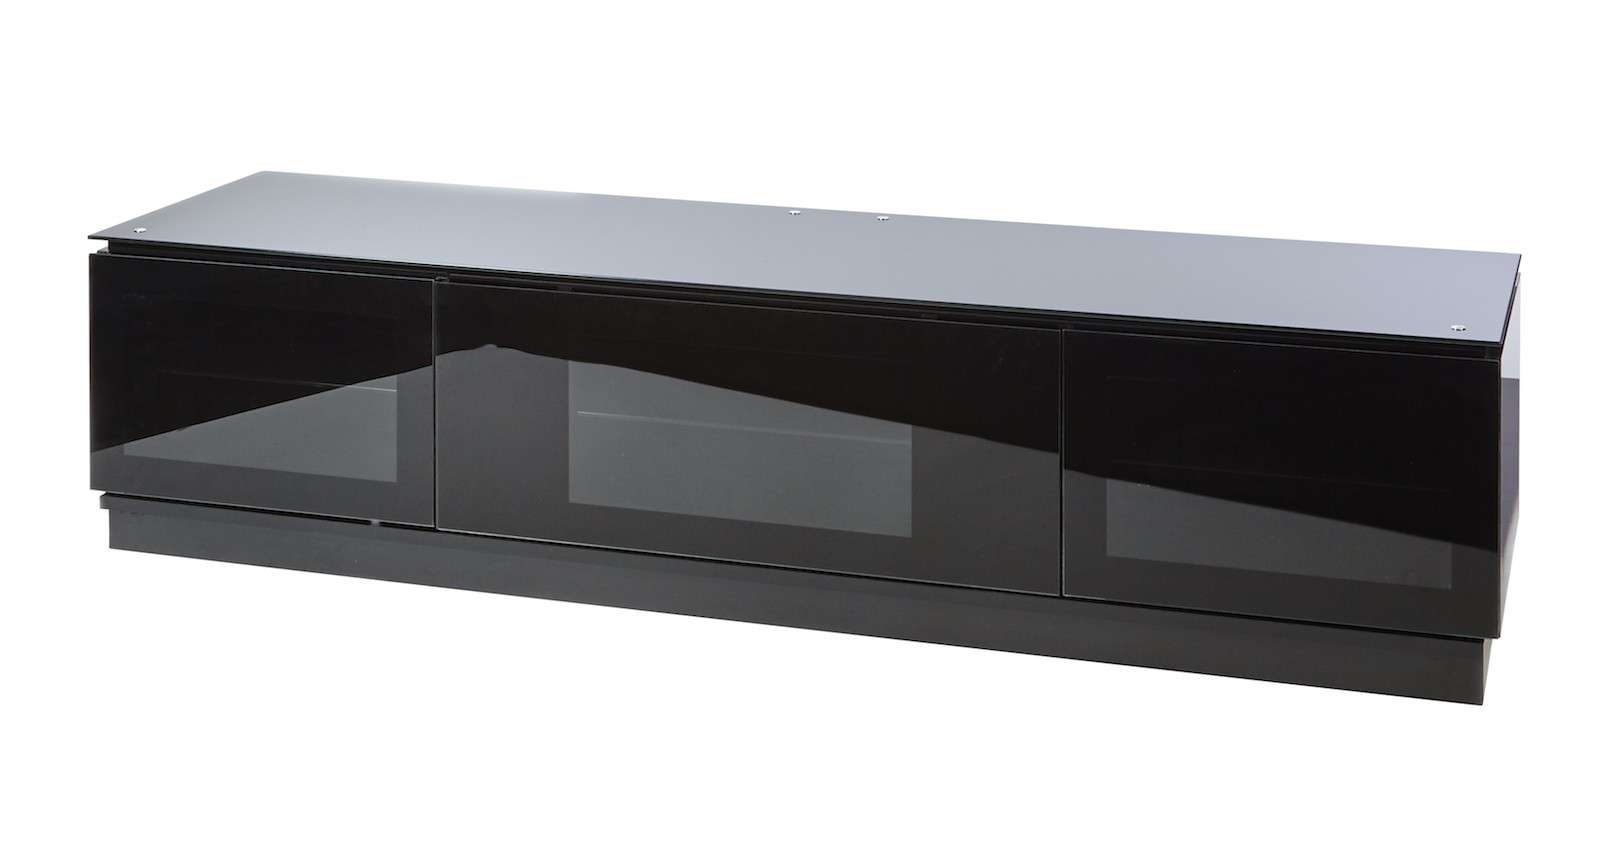 Black Gloss Tv Unit Up To 80 Inch Flat Screen Tv | Mmt D1800 Inside 80 Inch Tv Stands (Gallery 7 of 15)